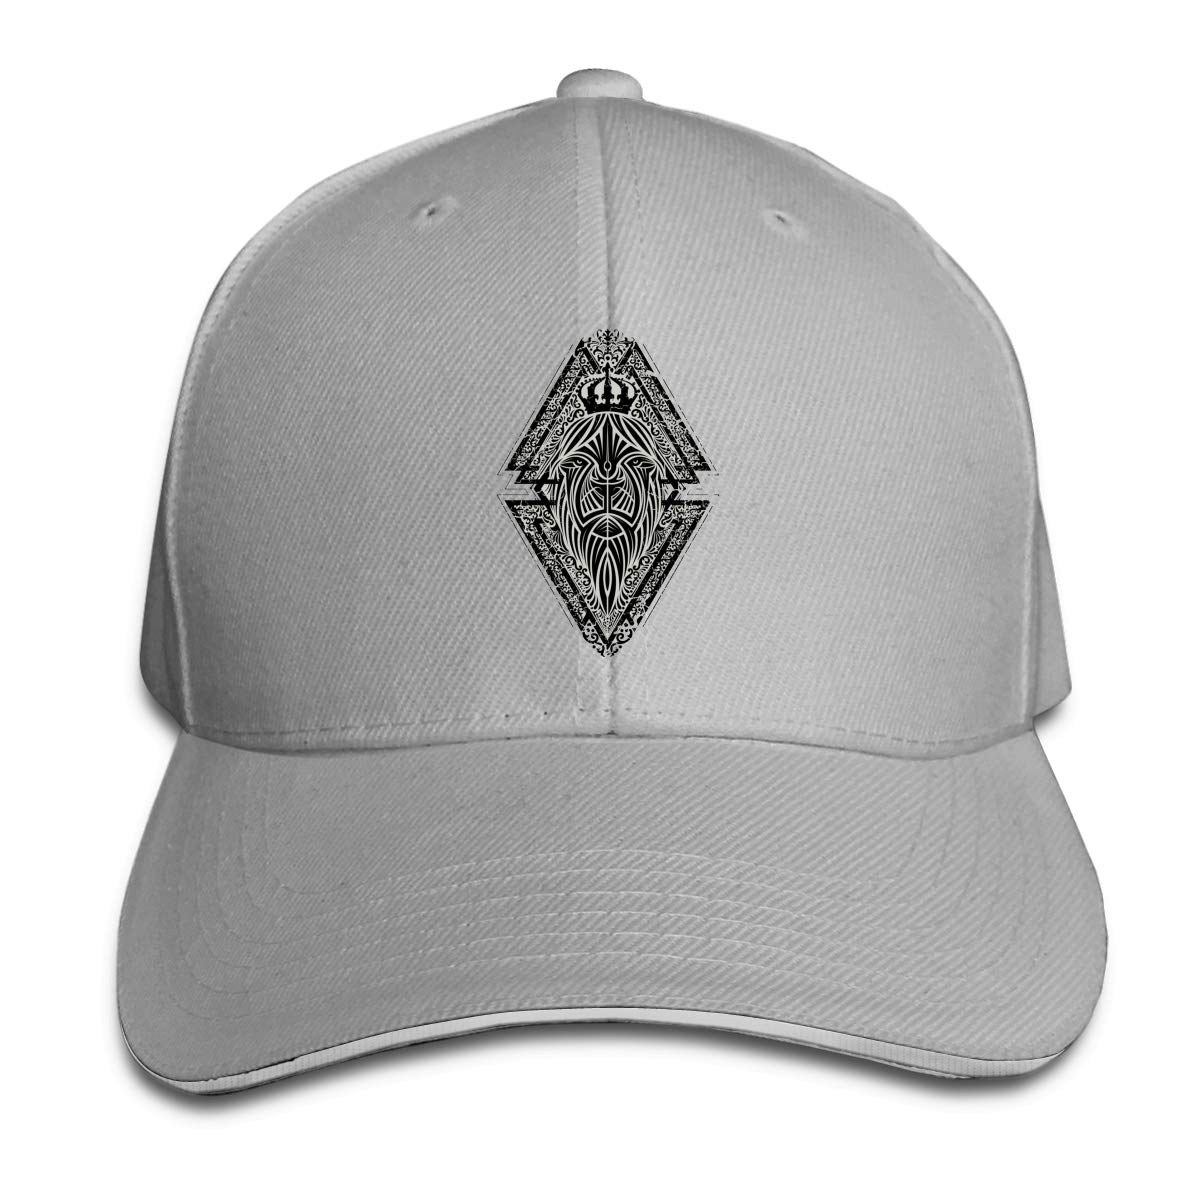 Lion Shield Classic Adjustable Cotton Baseball Caps Trucker Driver Hat Outdoor Cap Gray